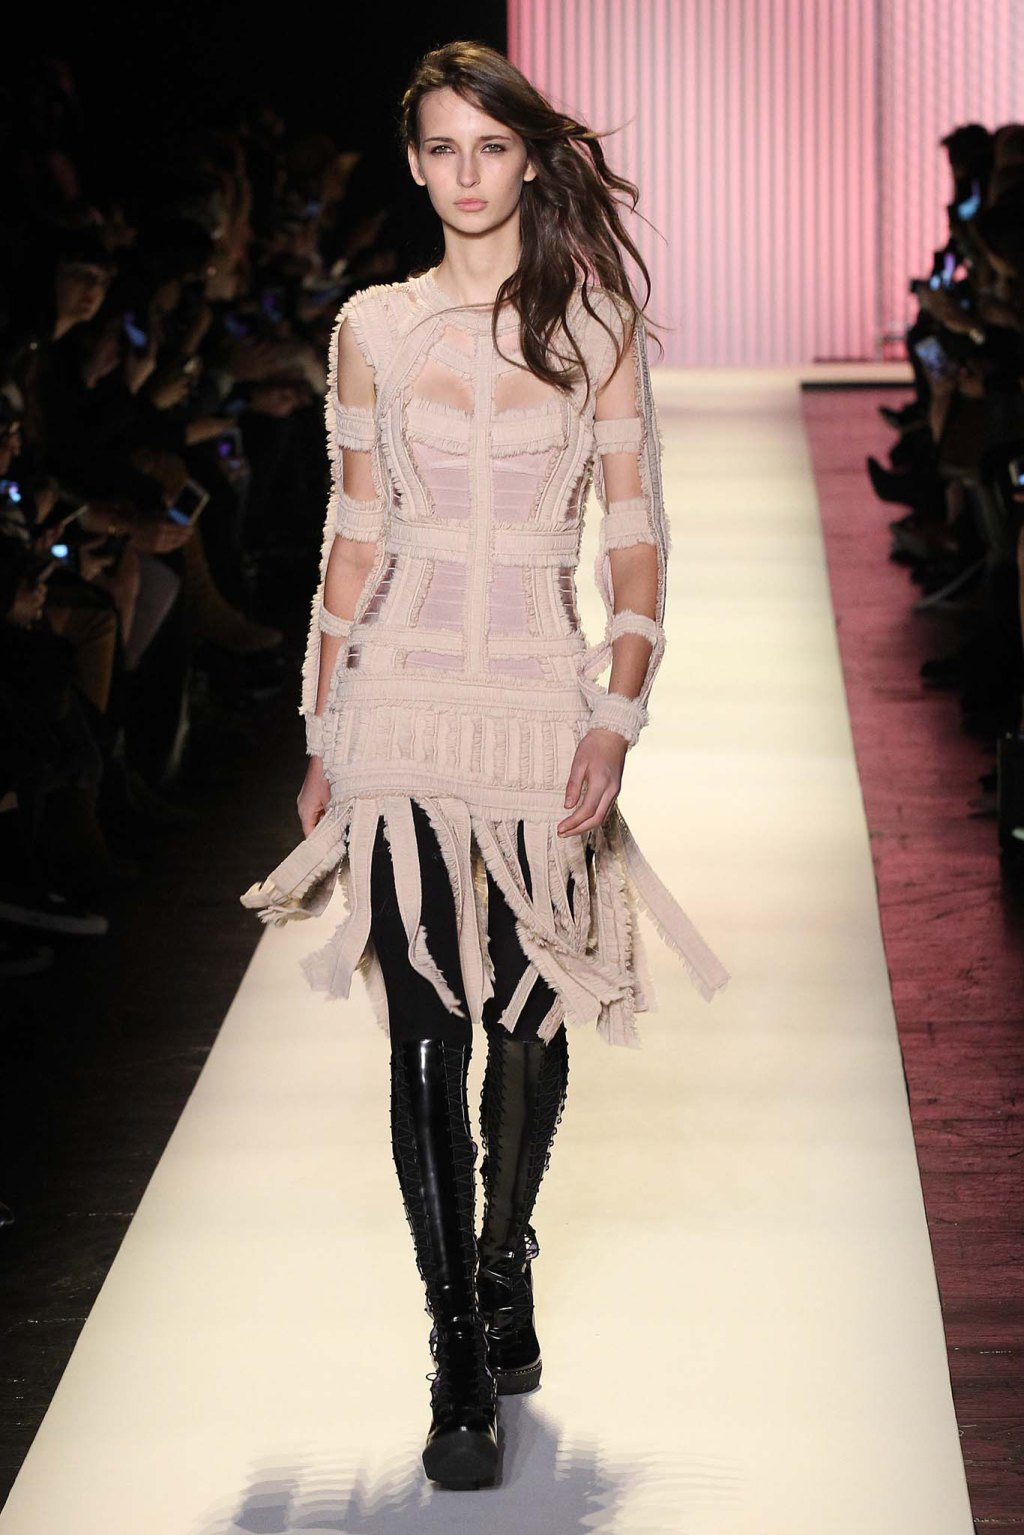 NYFW Hervé Léger Fashion Show Fall:Winter 2016 Louboutins & Love Fashion Blog Esther Santer NYC Street Style Models Collection Hair Makeup Bandage Dresses Pretty Trends Fringe Pink White Inspo Press Event Coverage Photos Details Jacket Hair Outfit .jpg